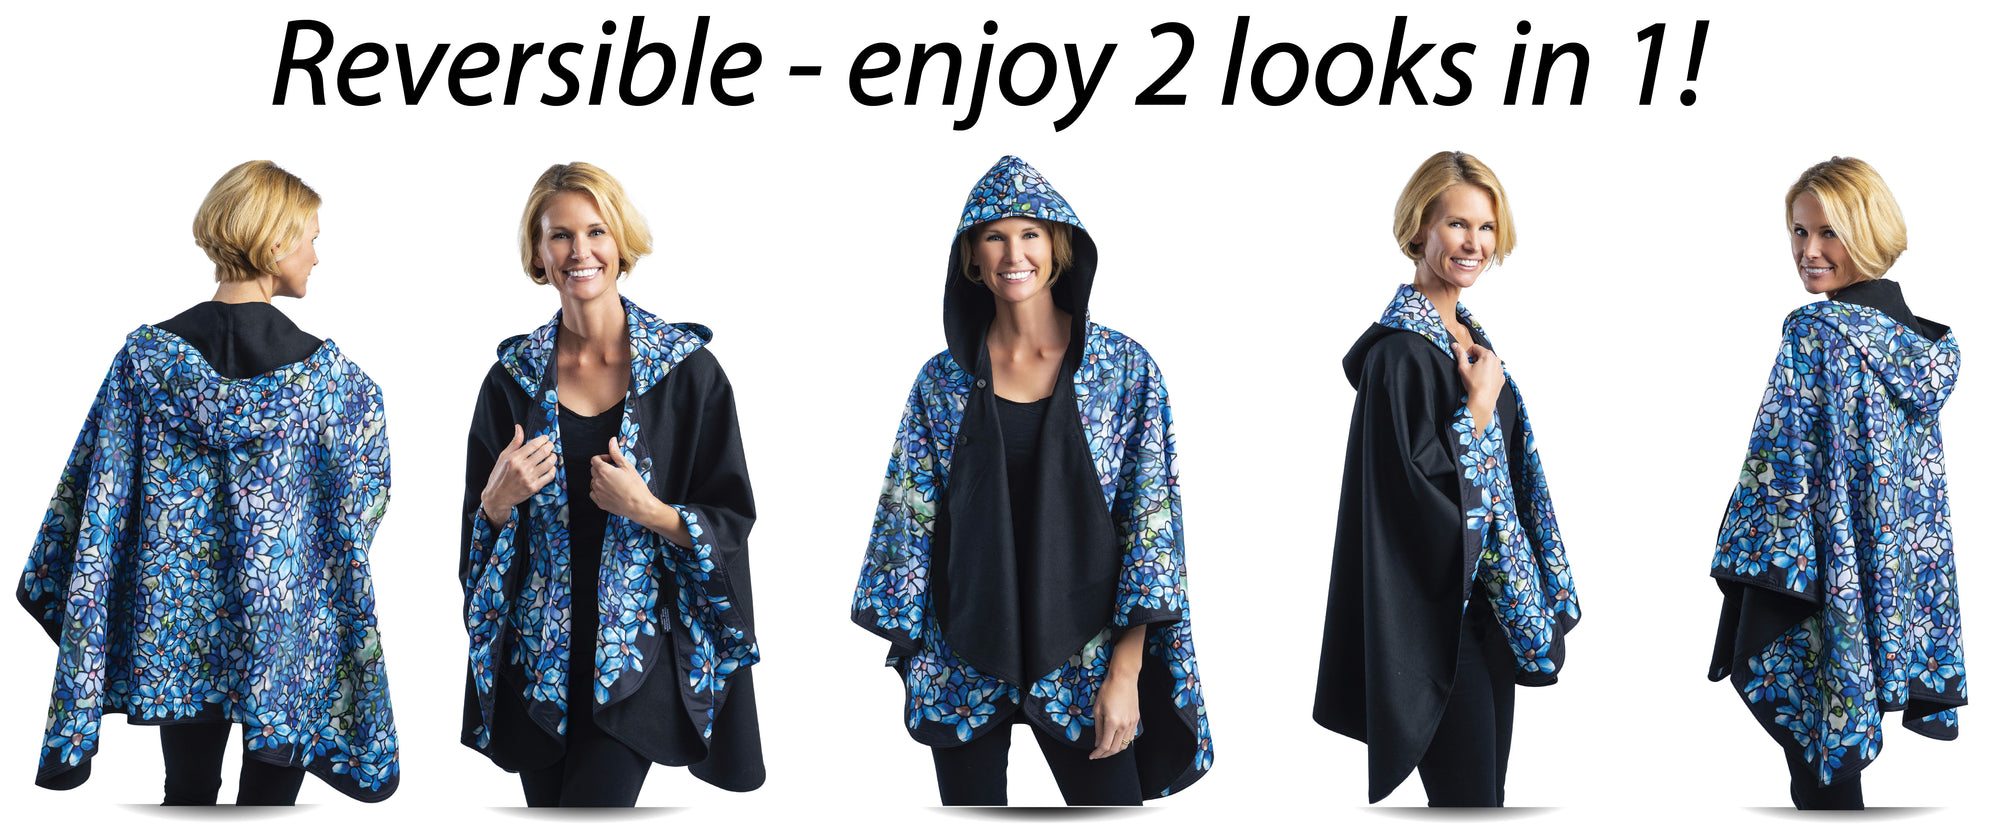 RainCaper is reversible for 2 looks in 1